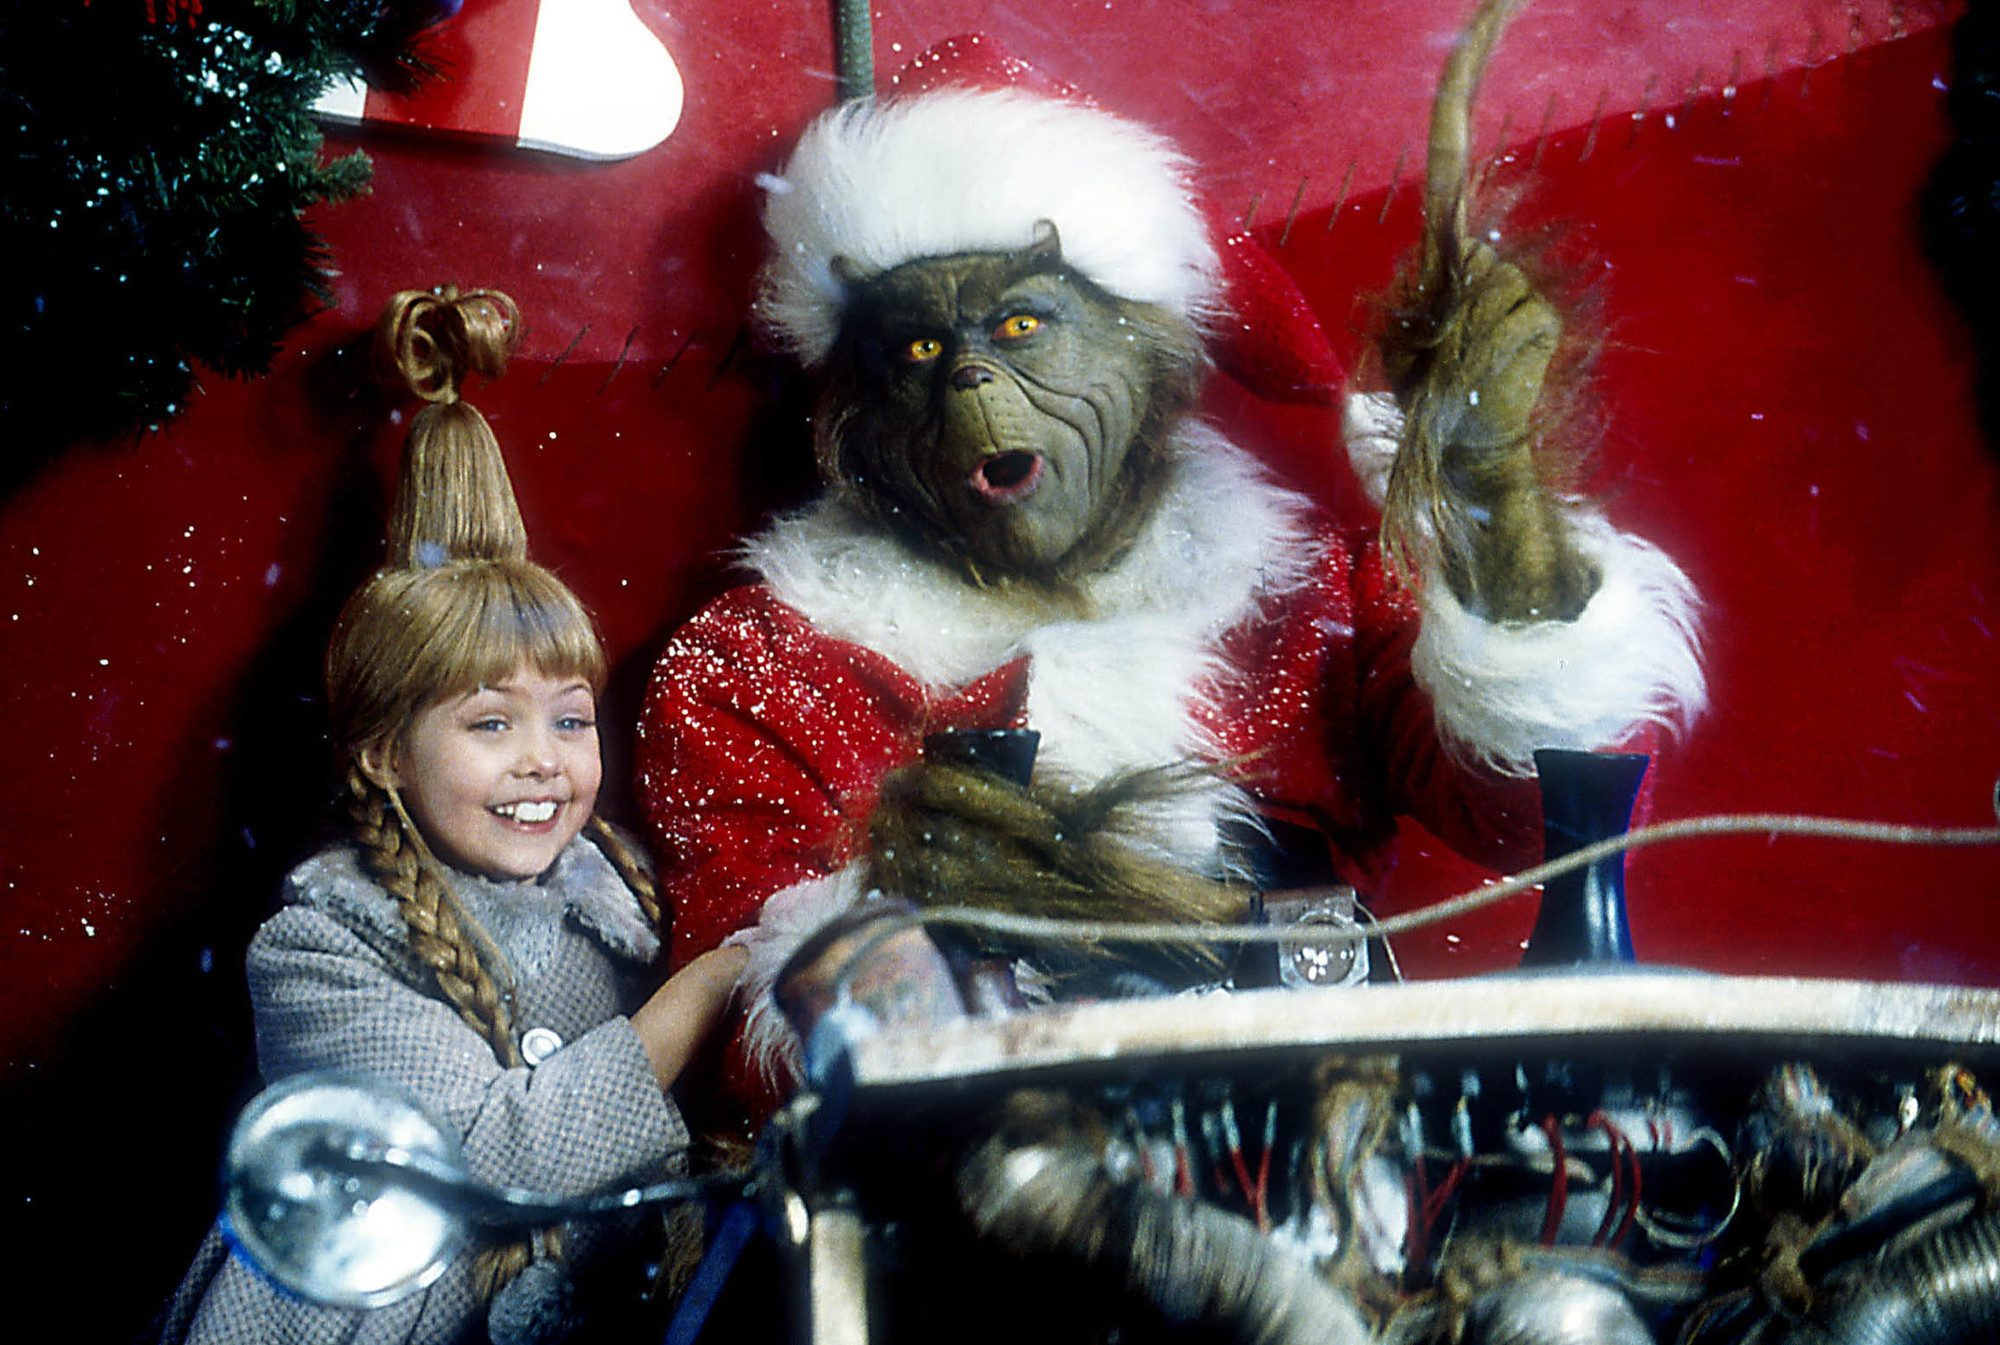 The Grinch: Taylor Momsen as Cindy Lou Who with her hair golden blonde hair styled into braided pigtails, wearing grey winter outfit, posing in the sleigh with The Grinch on set